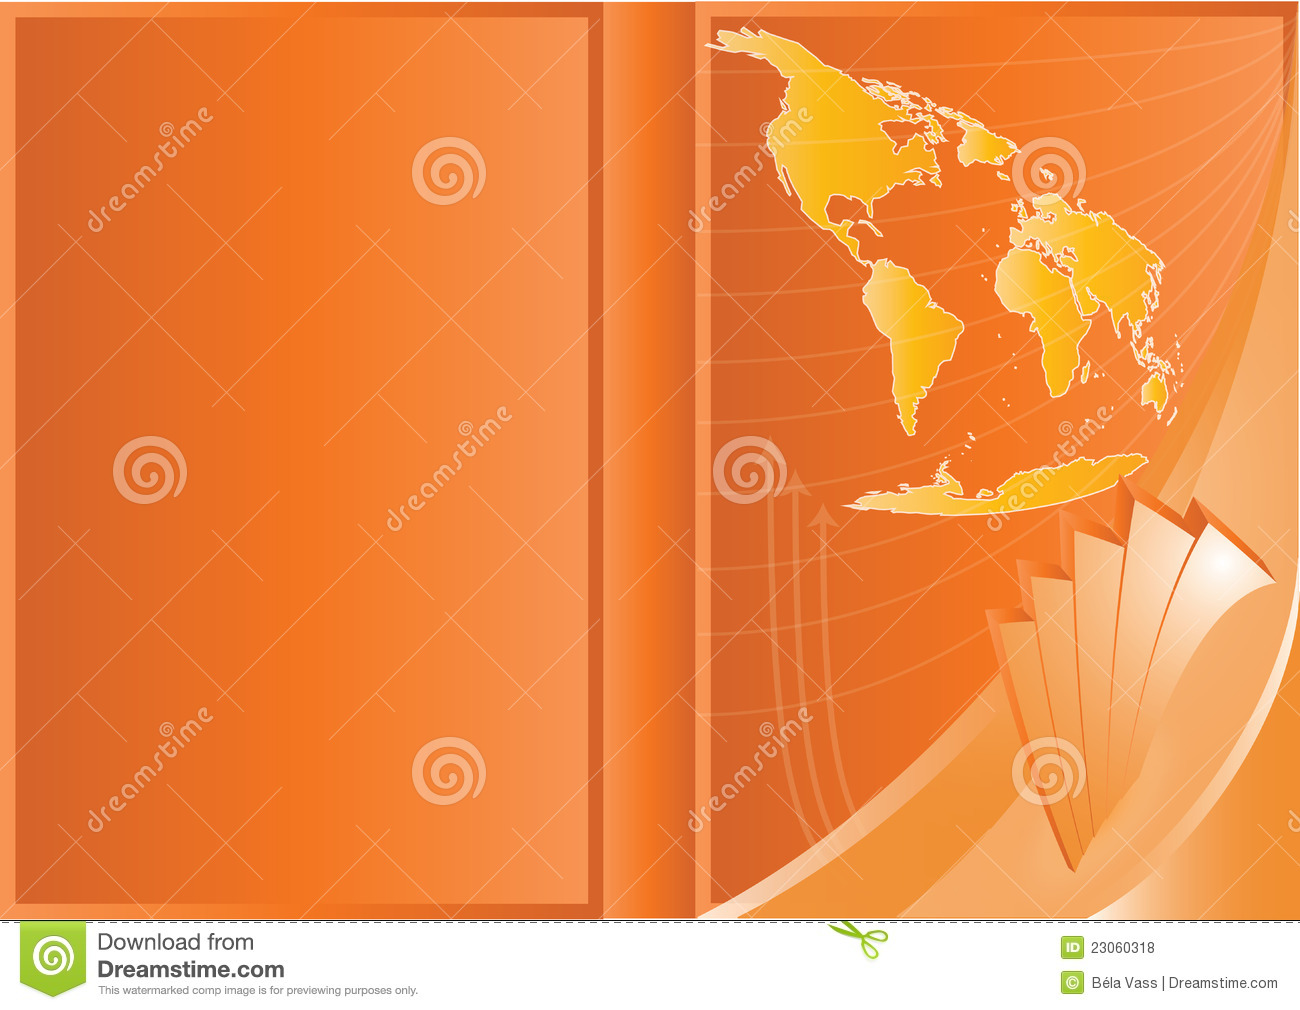 Vector Business Cover Design Royalty Free Stock Photos  Image 23060318